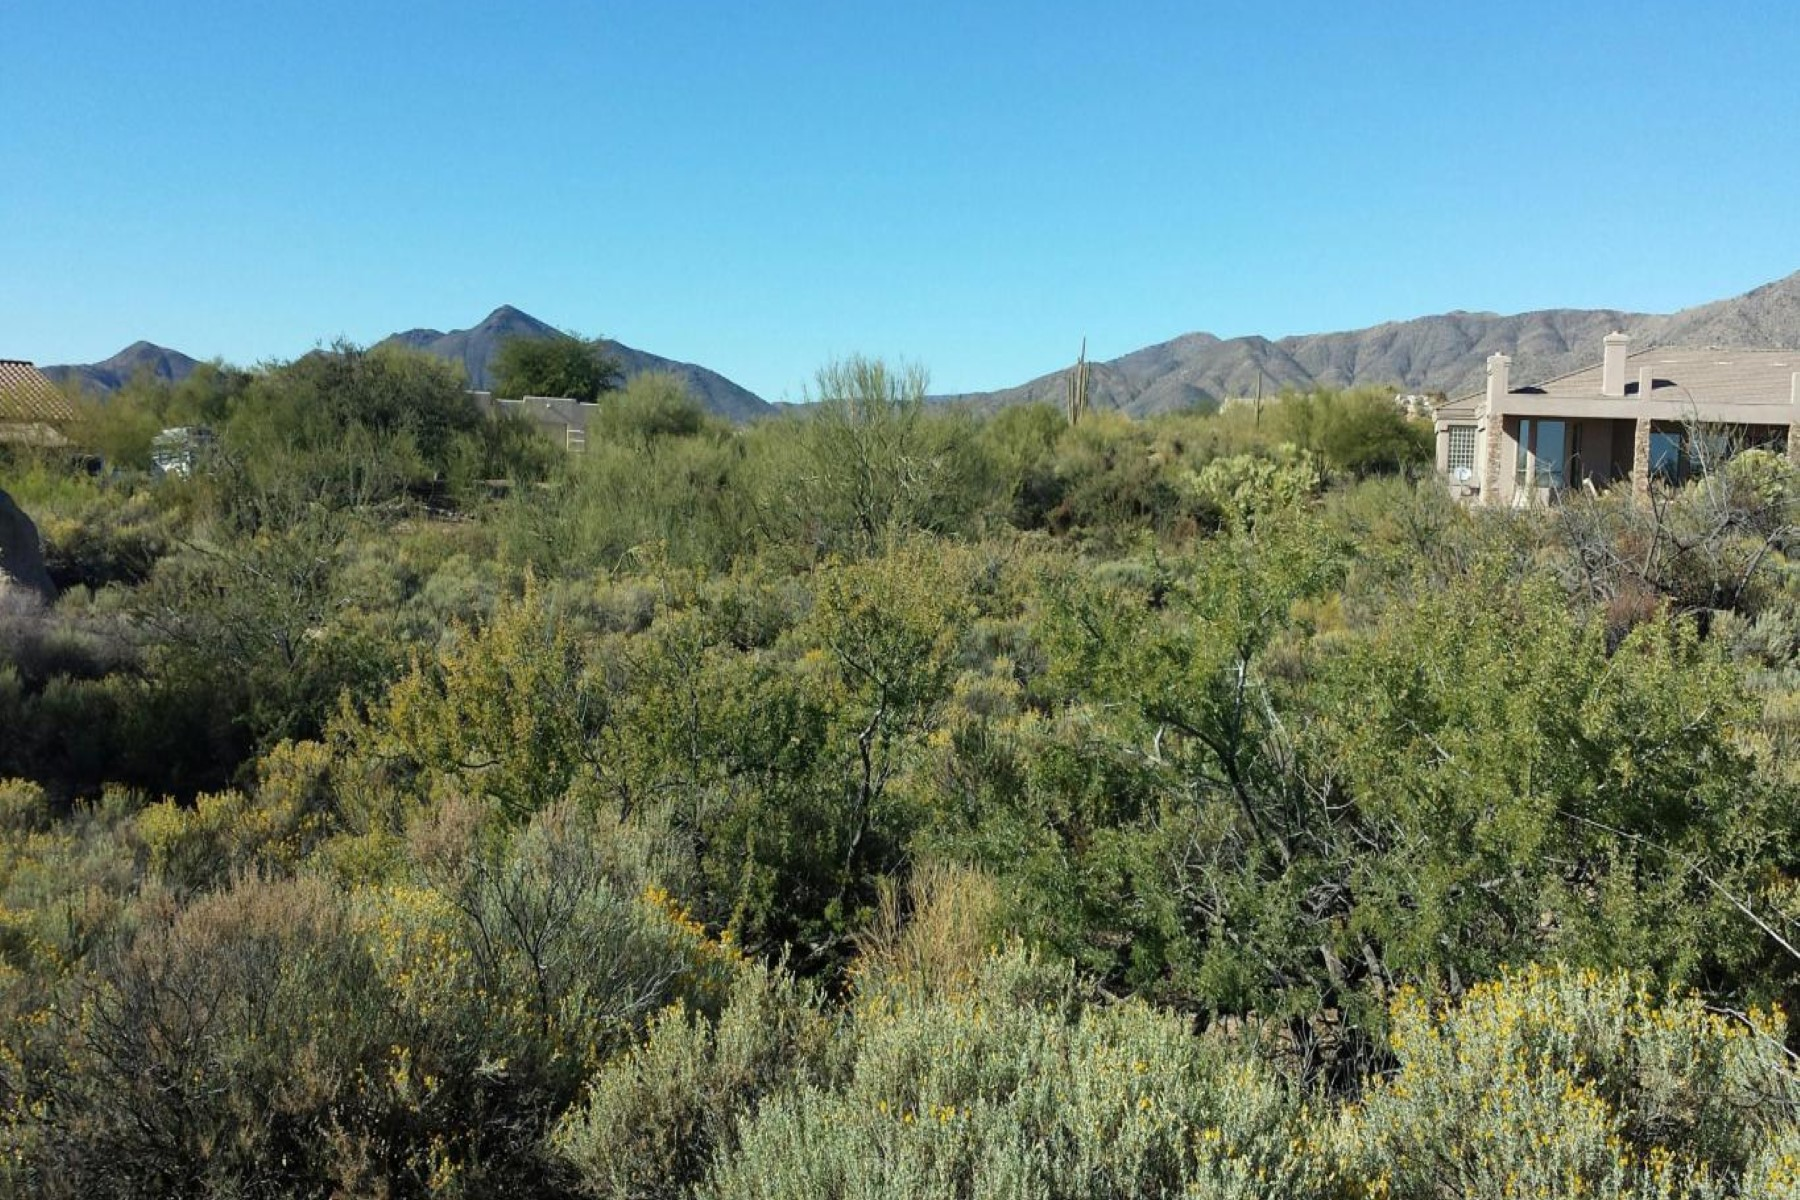 Land for Sale at One-acre building lot in a tranquil and beautiful natural desert setting 39224 N BOULDER VIEW DR Scottsdale, Arizona 85262 United States